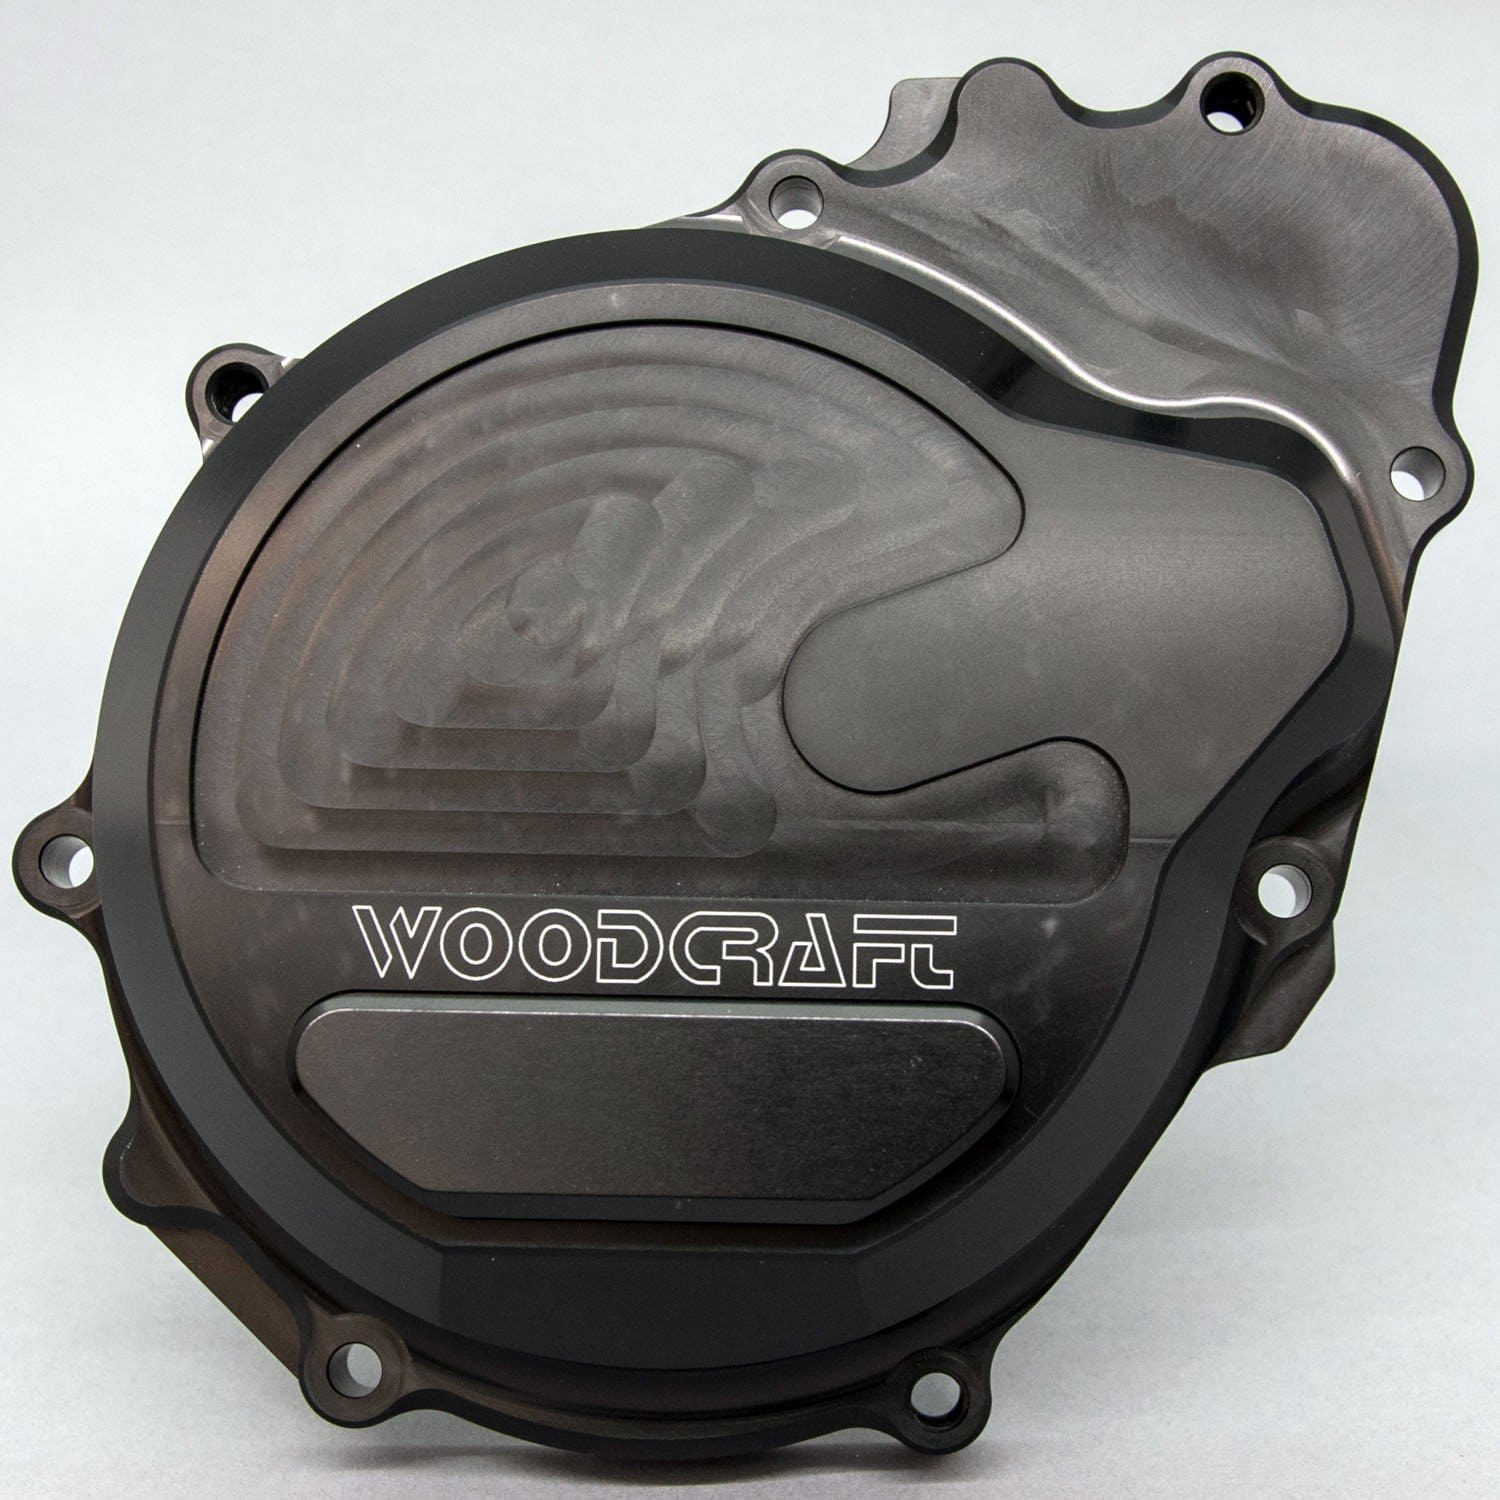 60-0145LB Kawasaki ZX6R/636 LHS Stator Cover - Assembly - Woodcraft Technologies - Motorcycle Parts